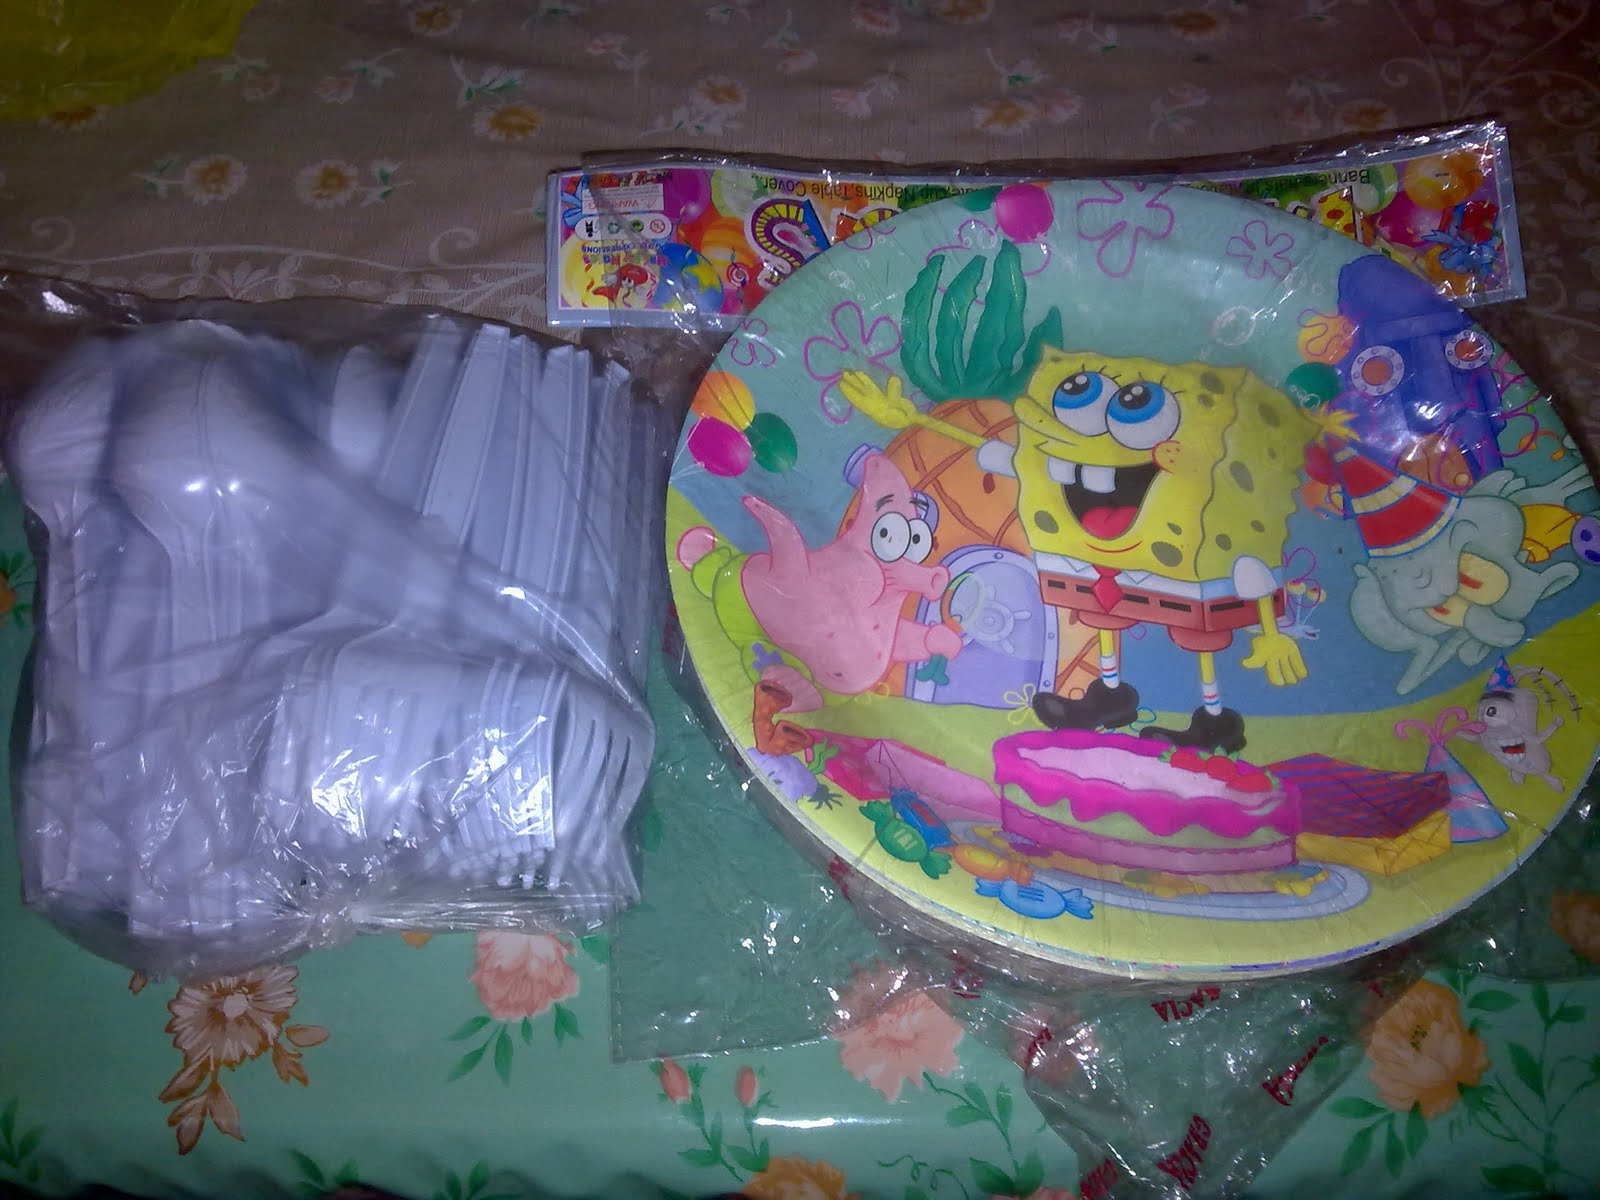 We also bought paper plates in Spongebob design and disposable utensils.